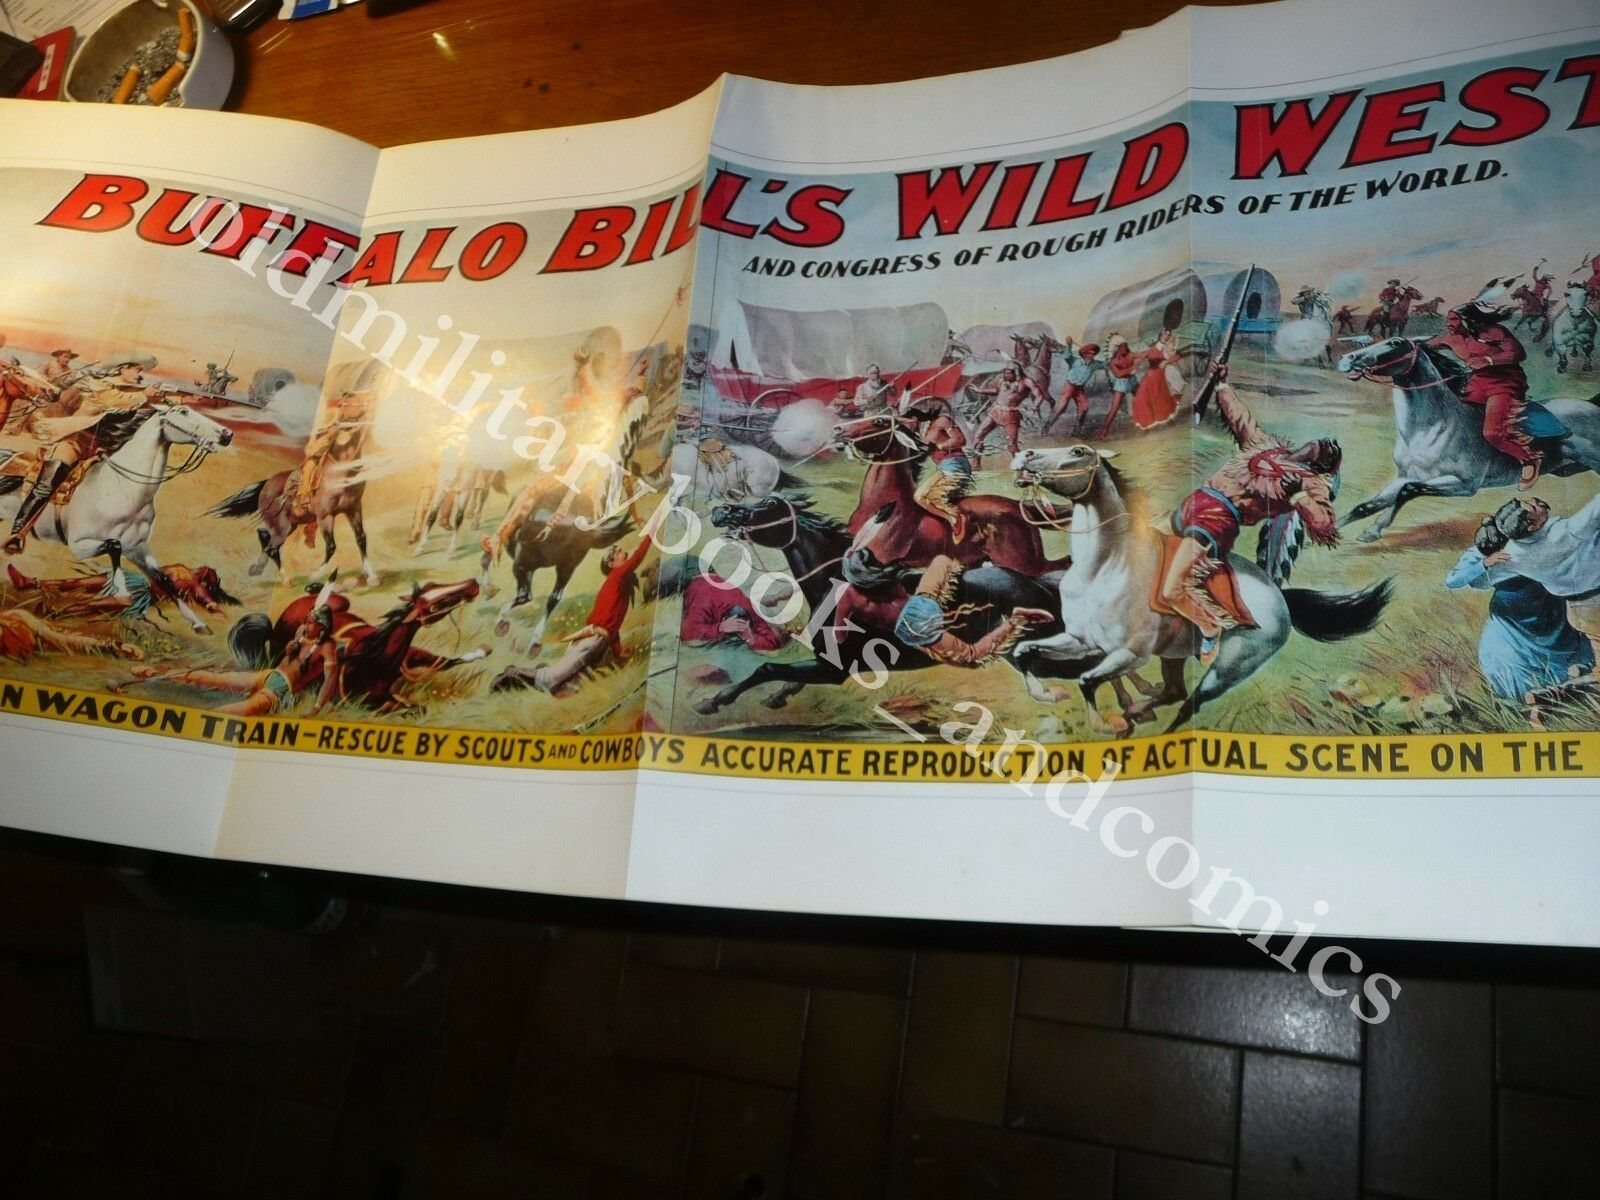 CENT AFFICHES DE BUFFALO BILL'S WILD WEST 100 MANIFESTI DEL GRANDE BUFFALO BILL